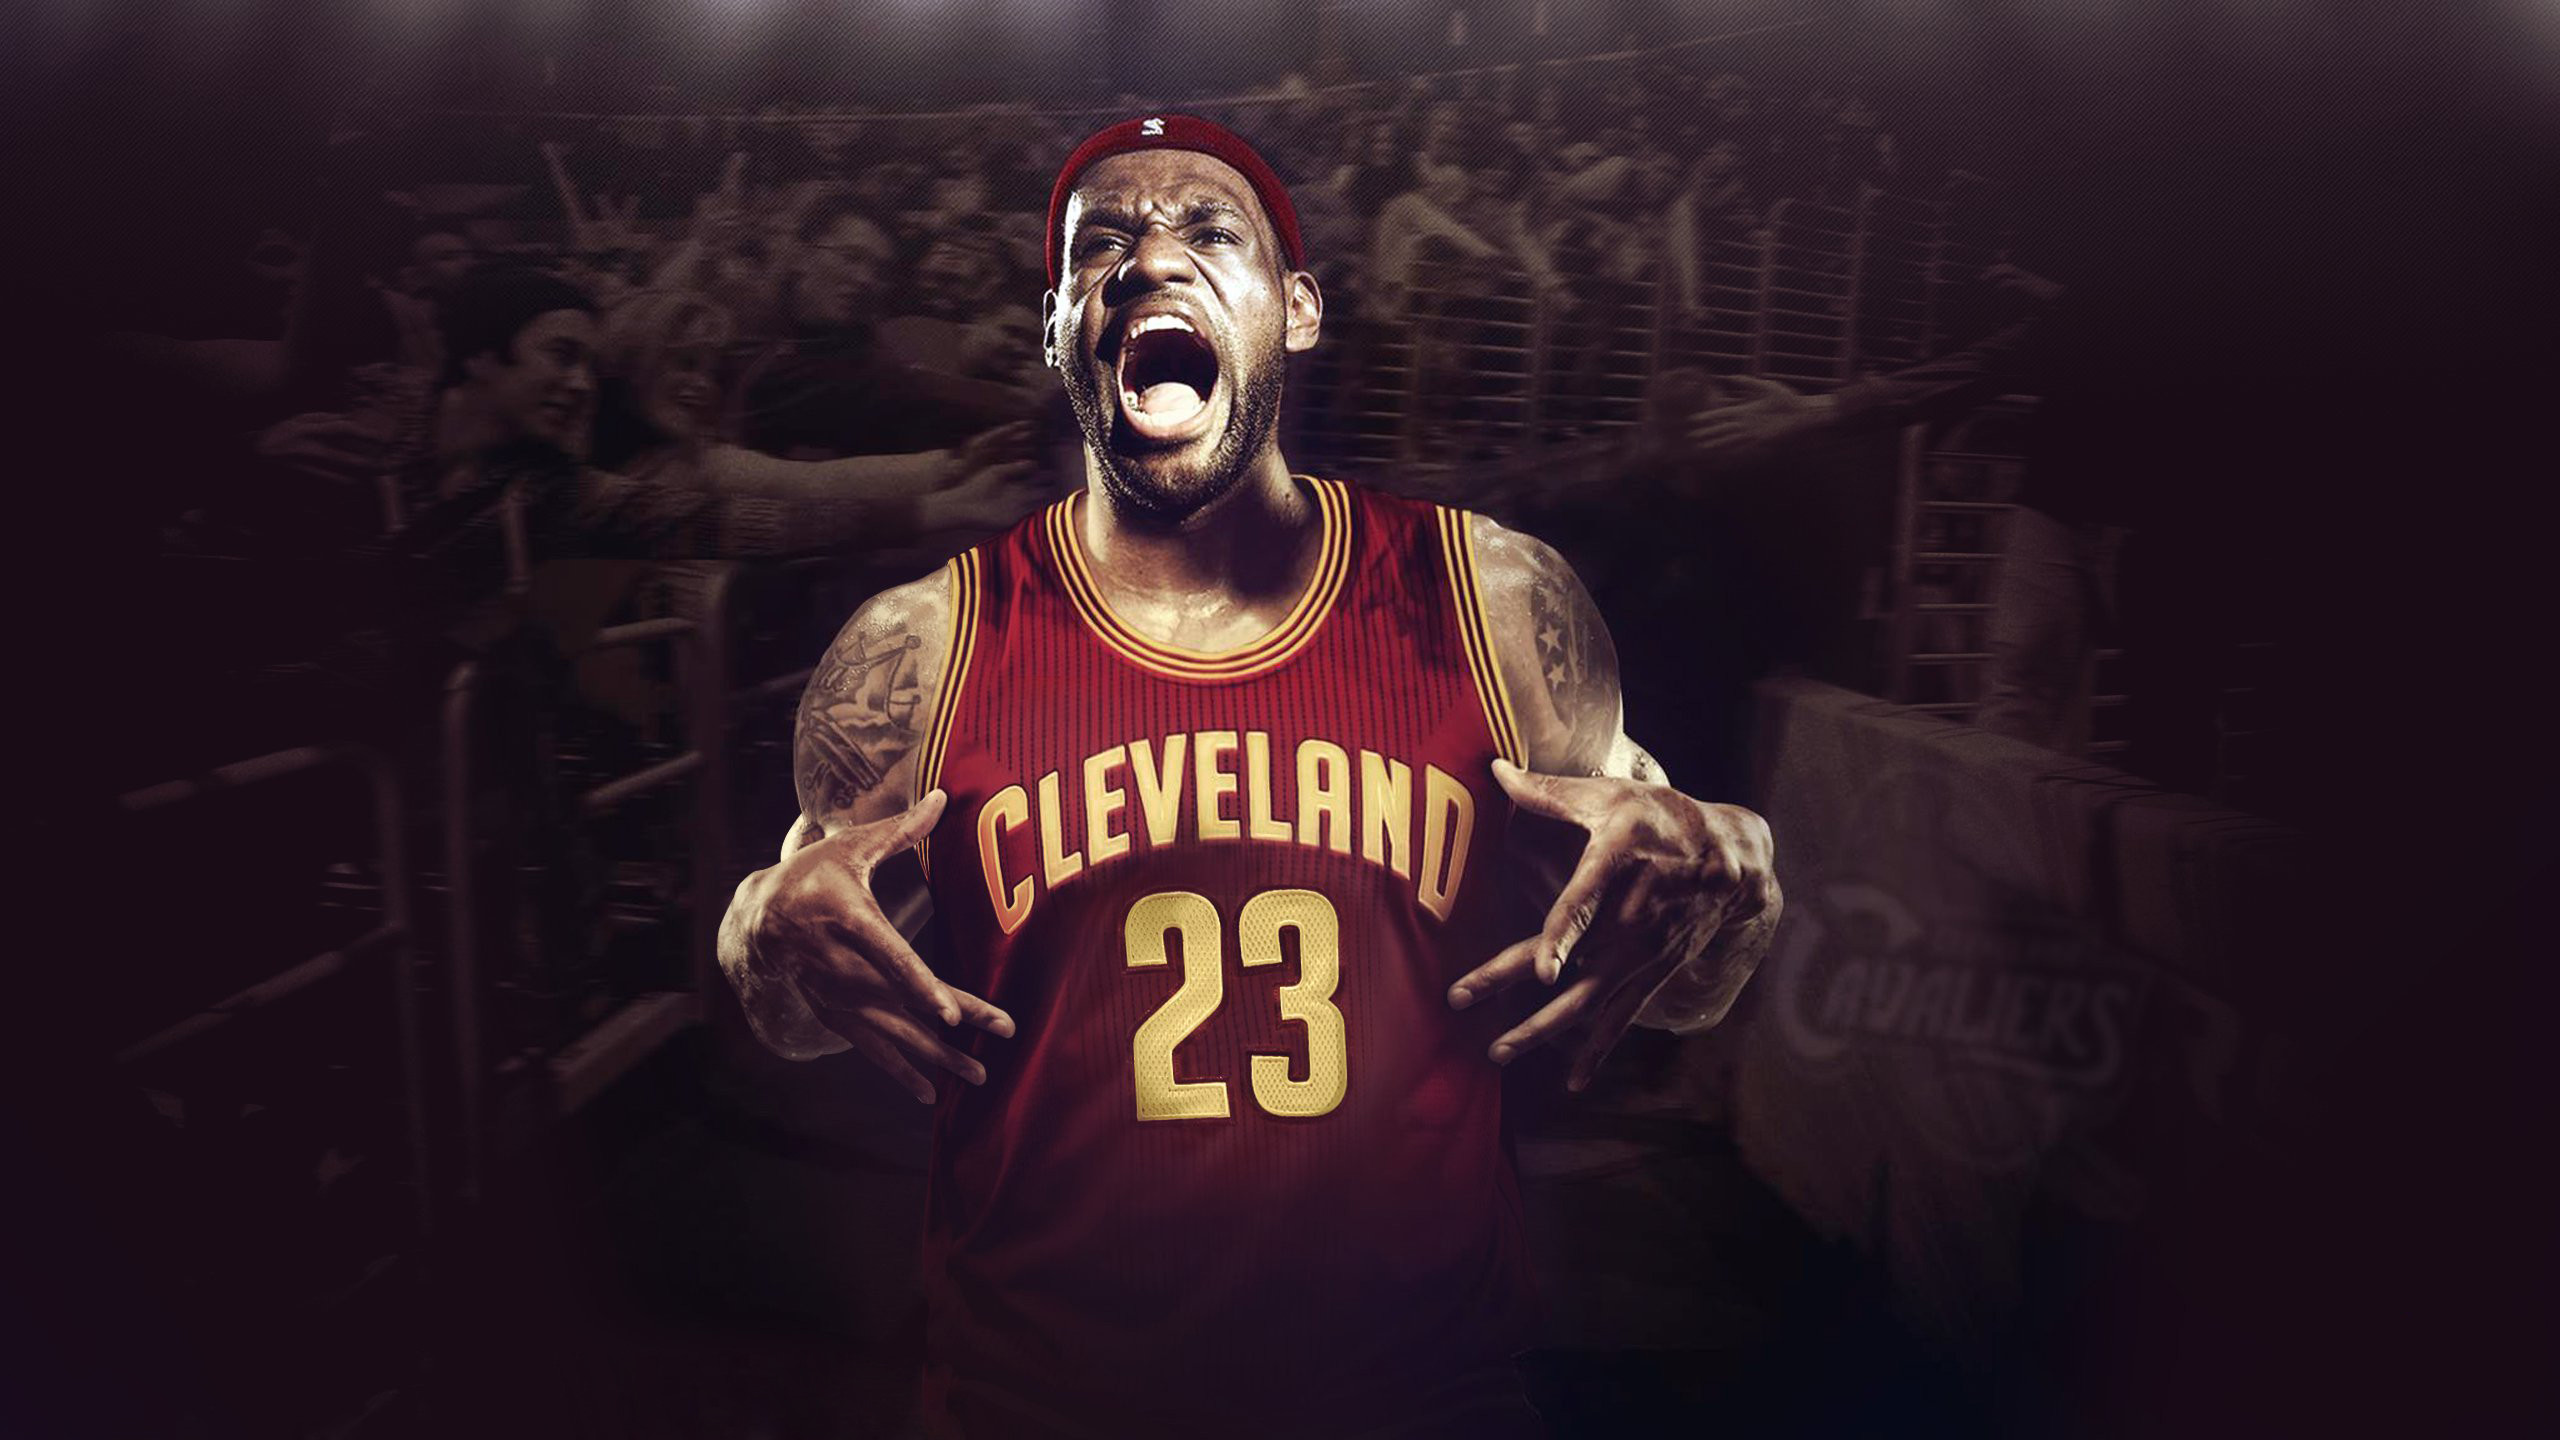 Cleveland Cavaliers Wallpapers (85+ images)